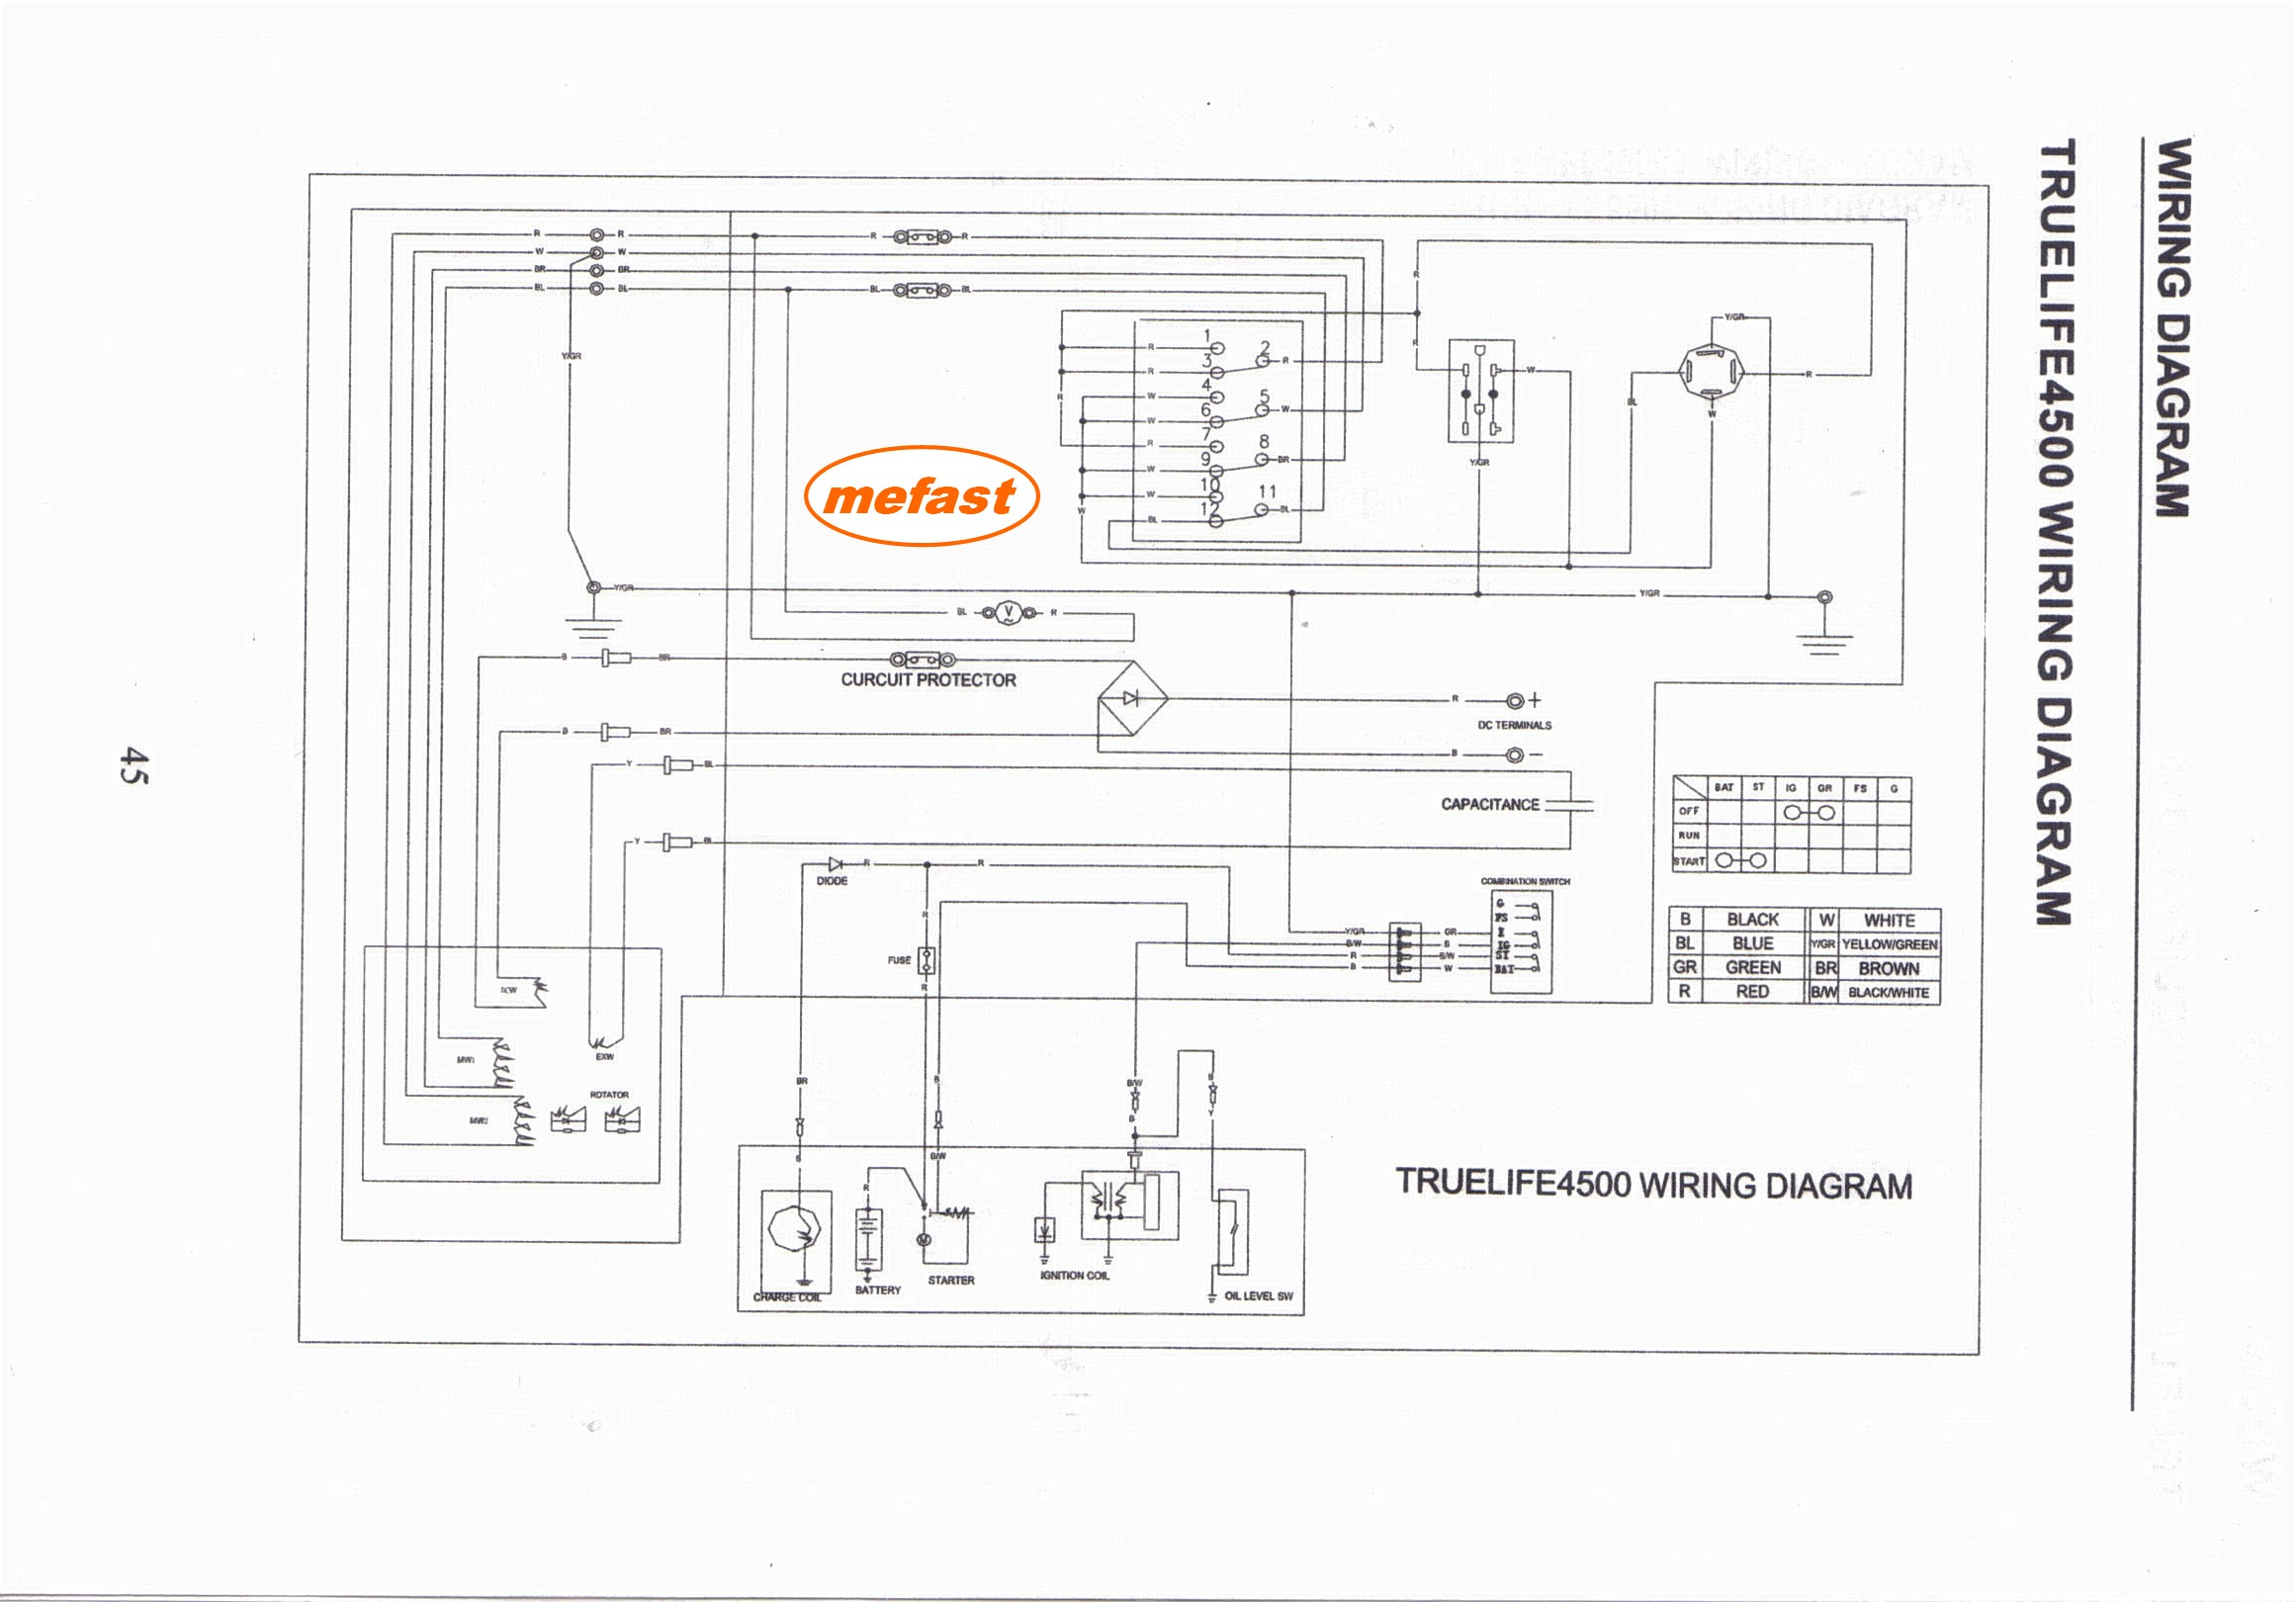 Truelife 4500 Generator Wire Diagram